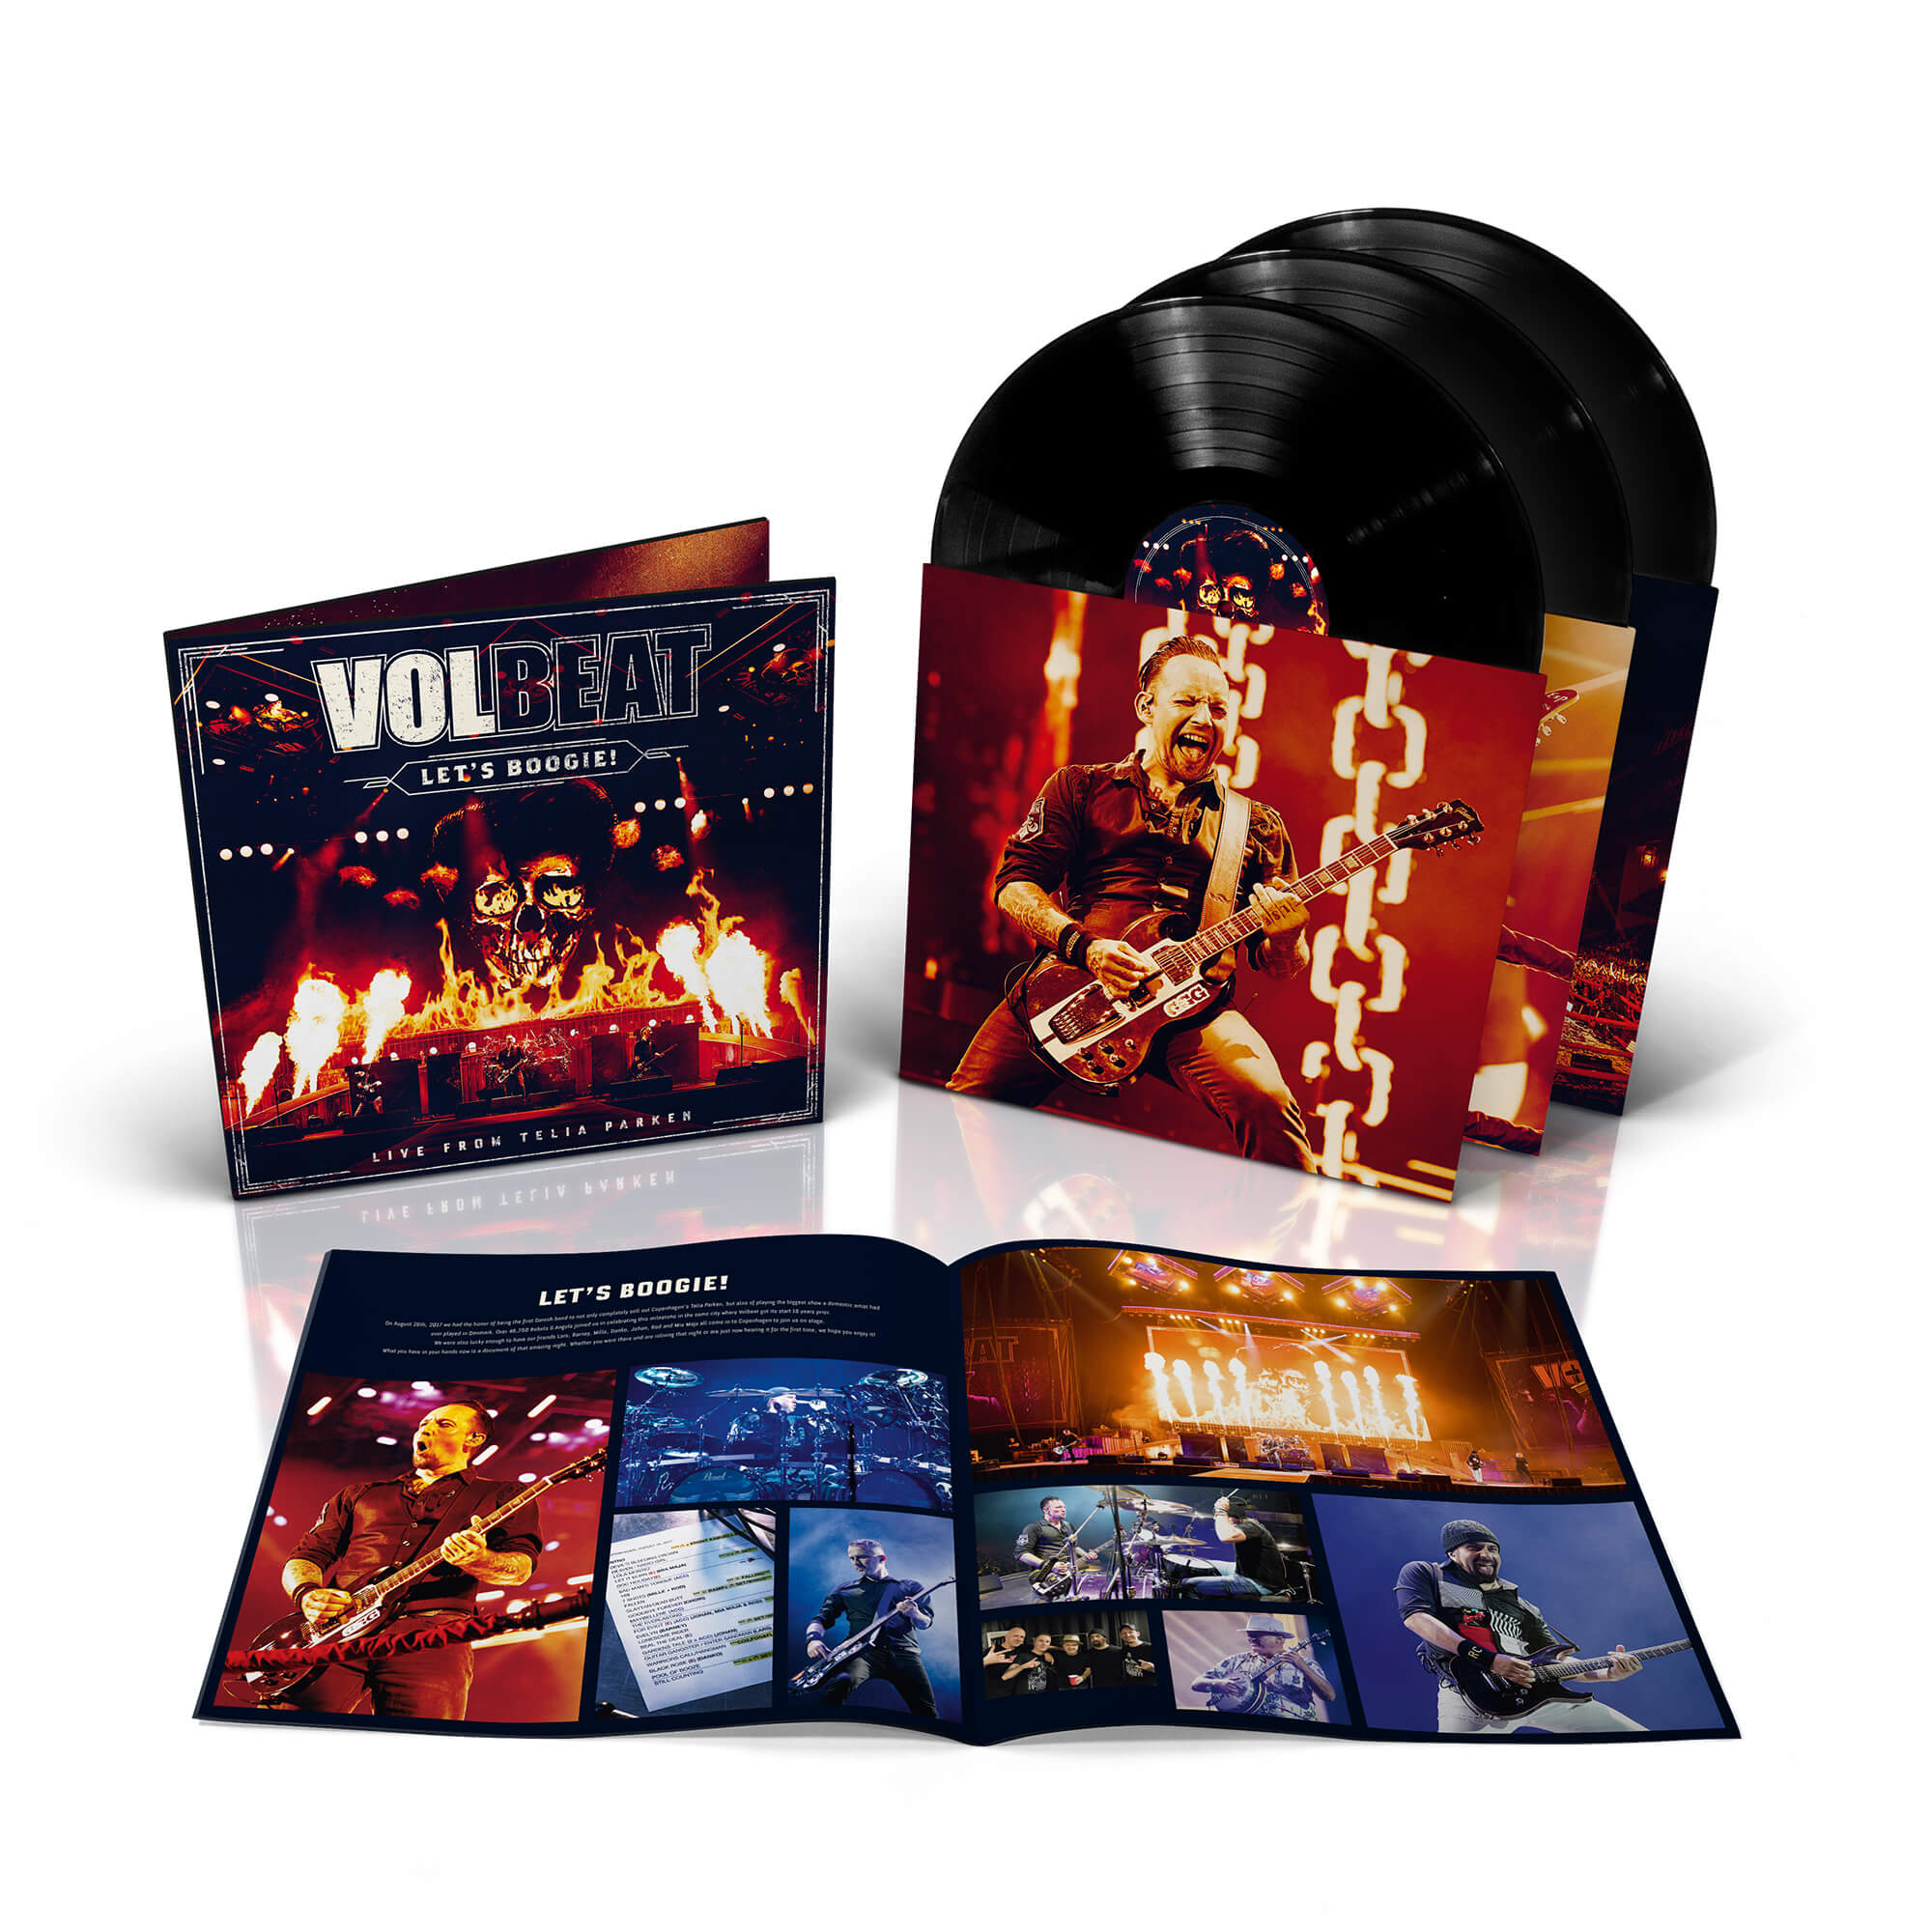 Volbeat Online Store - Let's Boogie! Live from Telia Parken (inkl